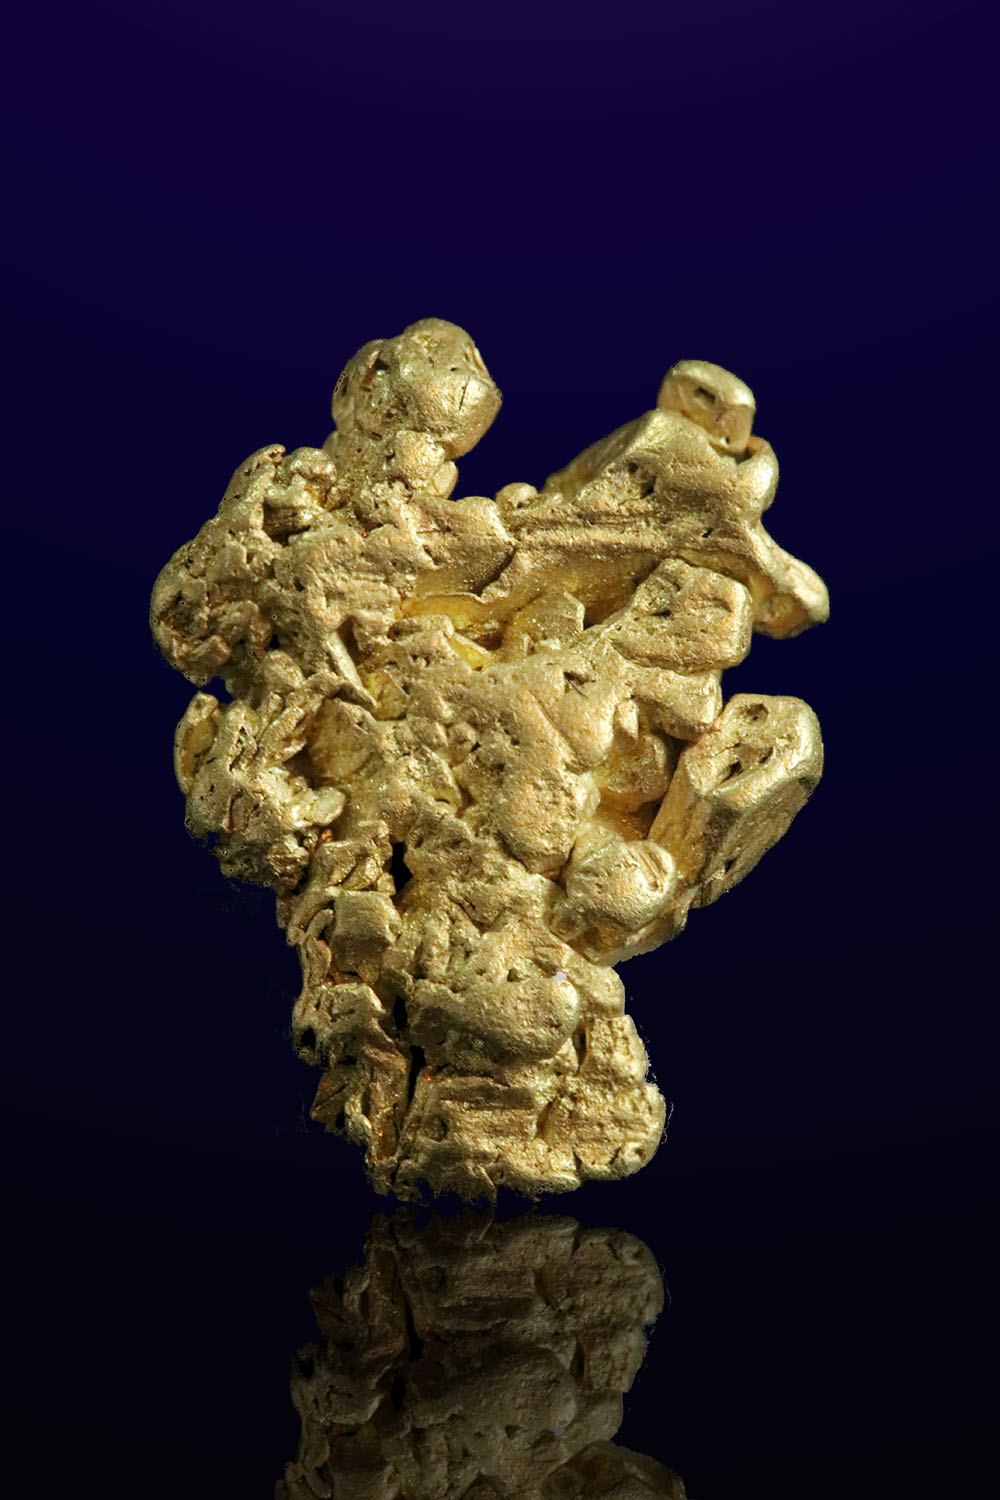 Natural Crusty Rounded Gold Crystal Formation - Mt. Kare, PNG